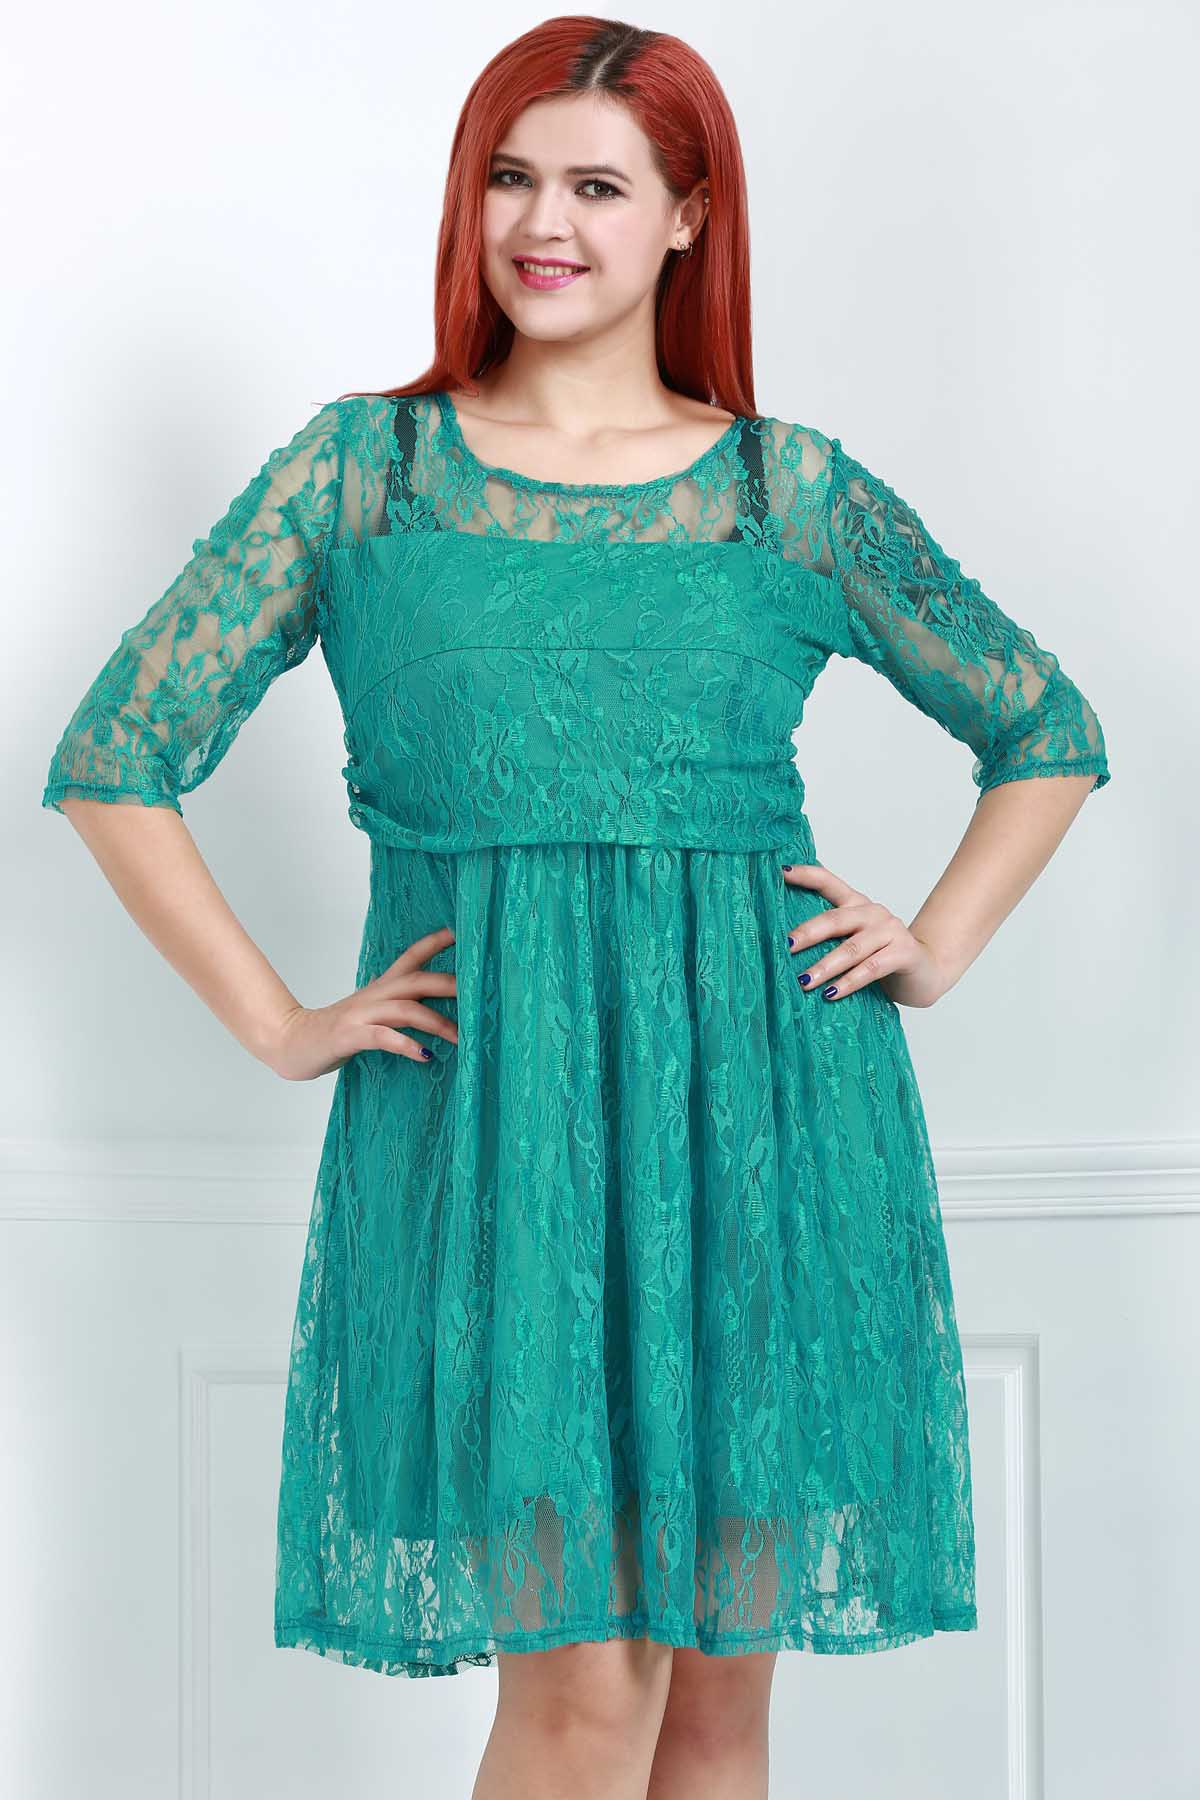 Outfits Graceful Round Collar Half Sleeve Green Lace Women's Dress